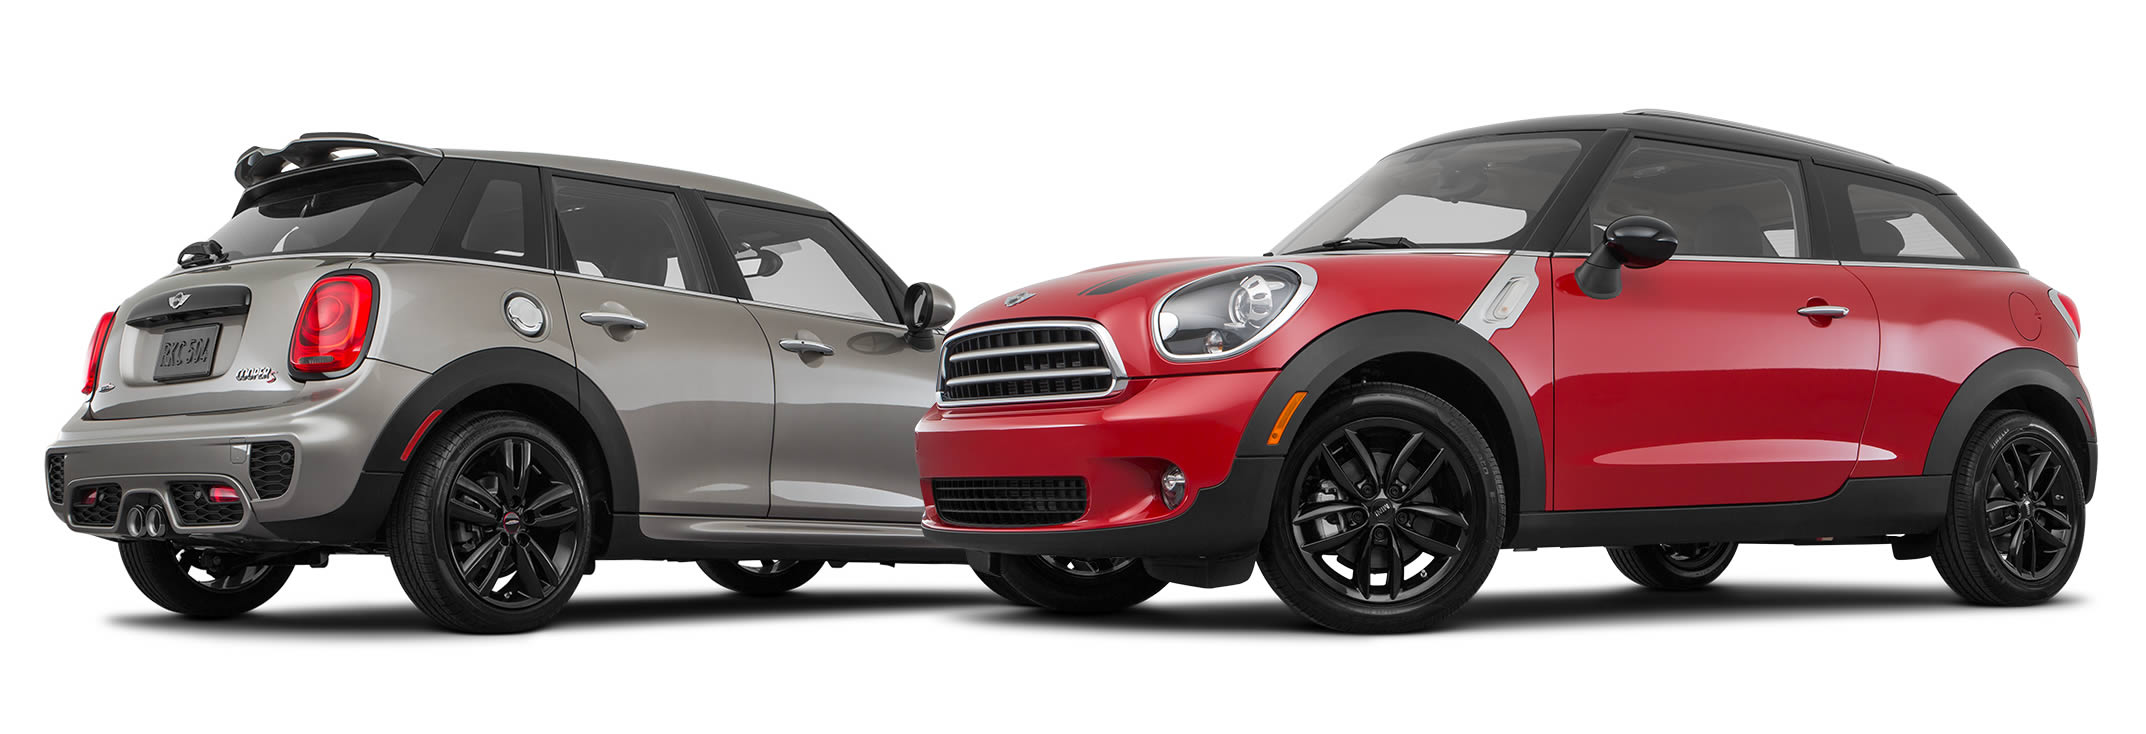 Mini Cooper Canada 2017 Best Deals Offers Leasecosts Canada